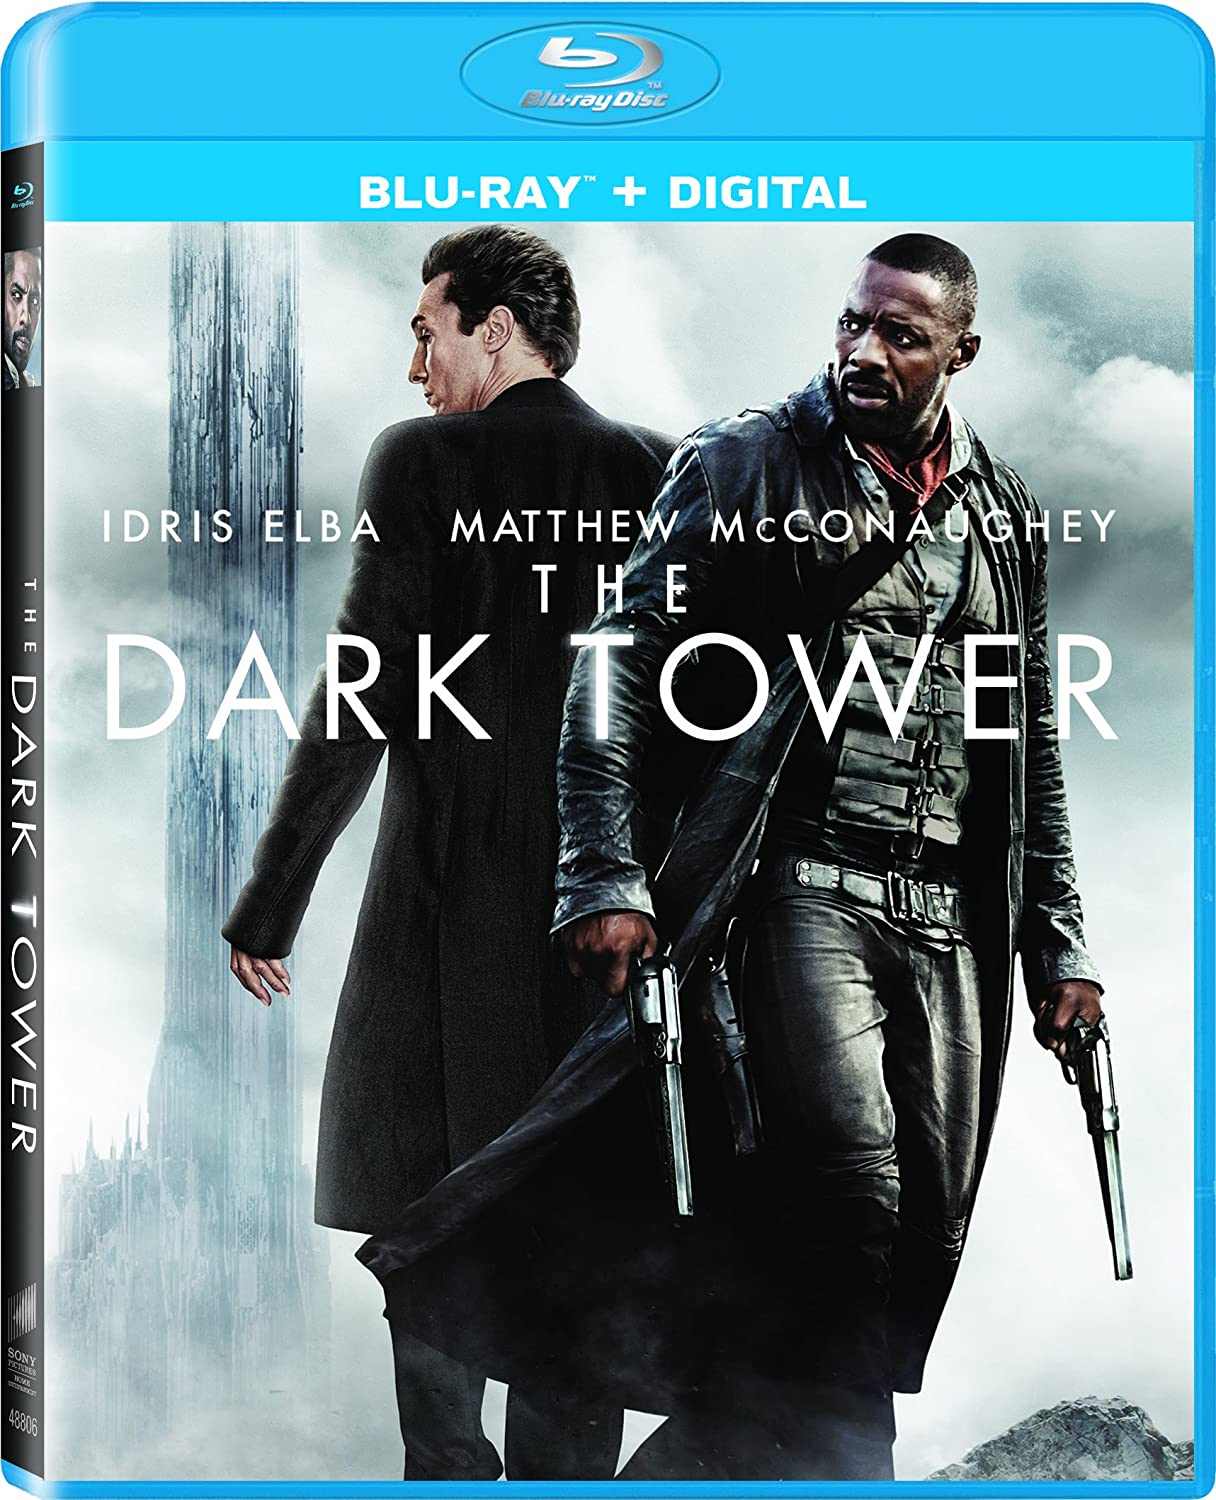 THE DARK TOWER Blu-ray Release Date Announced And Full List Of